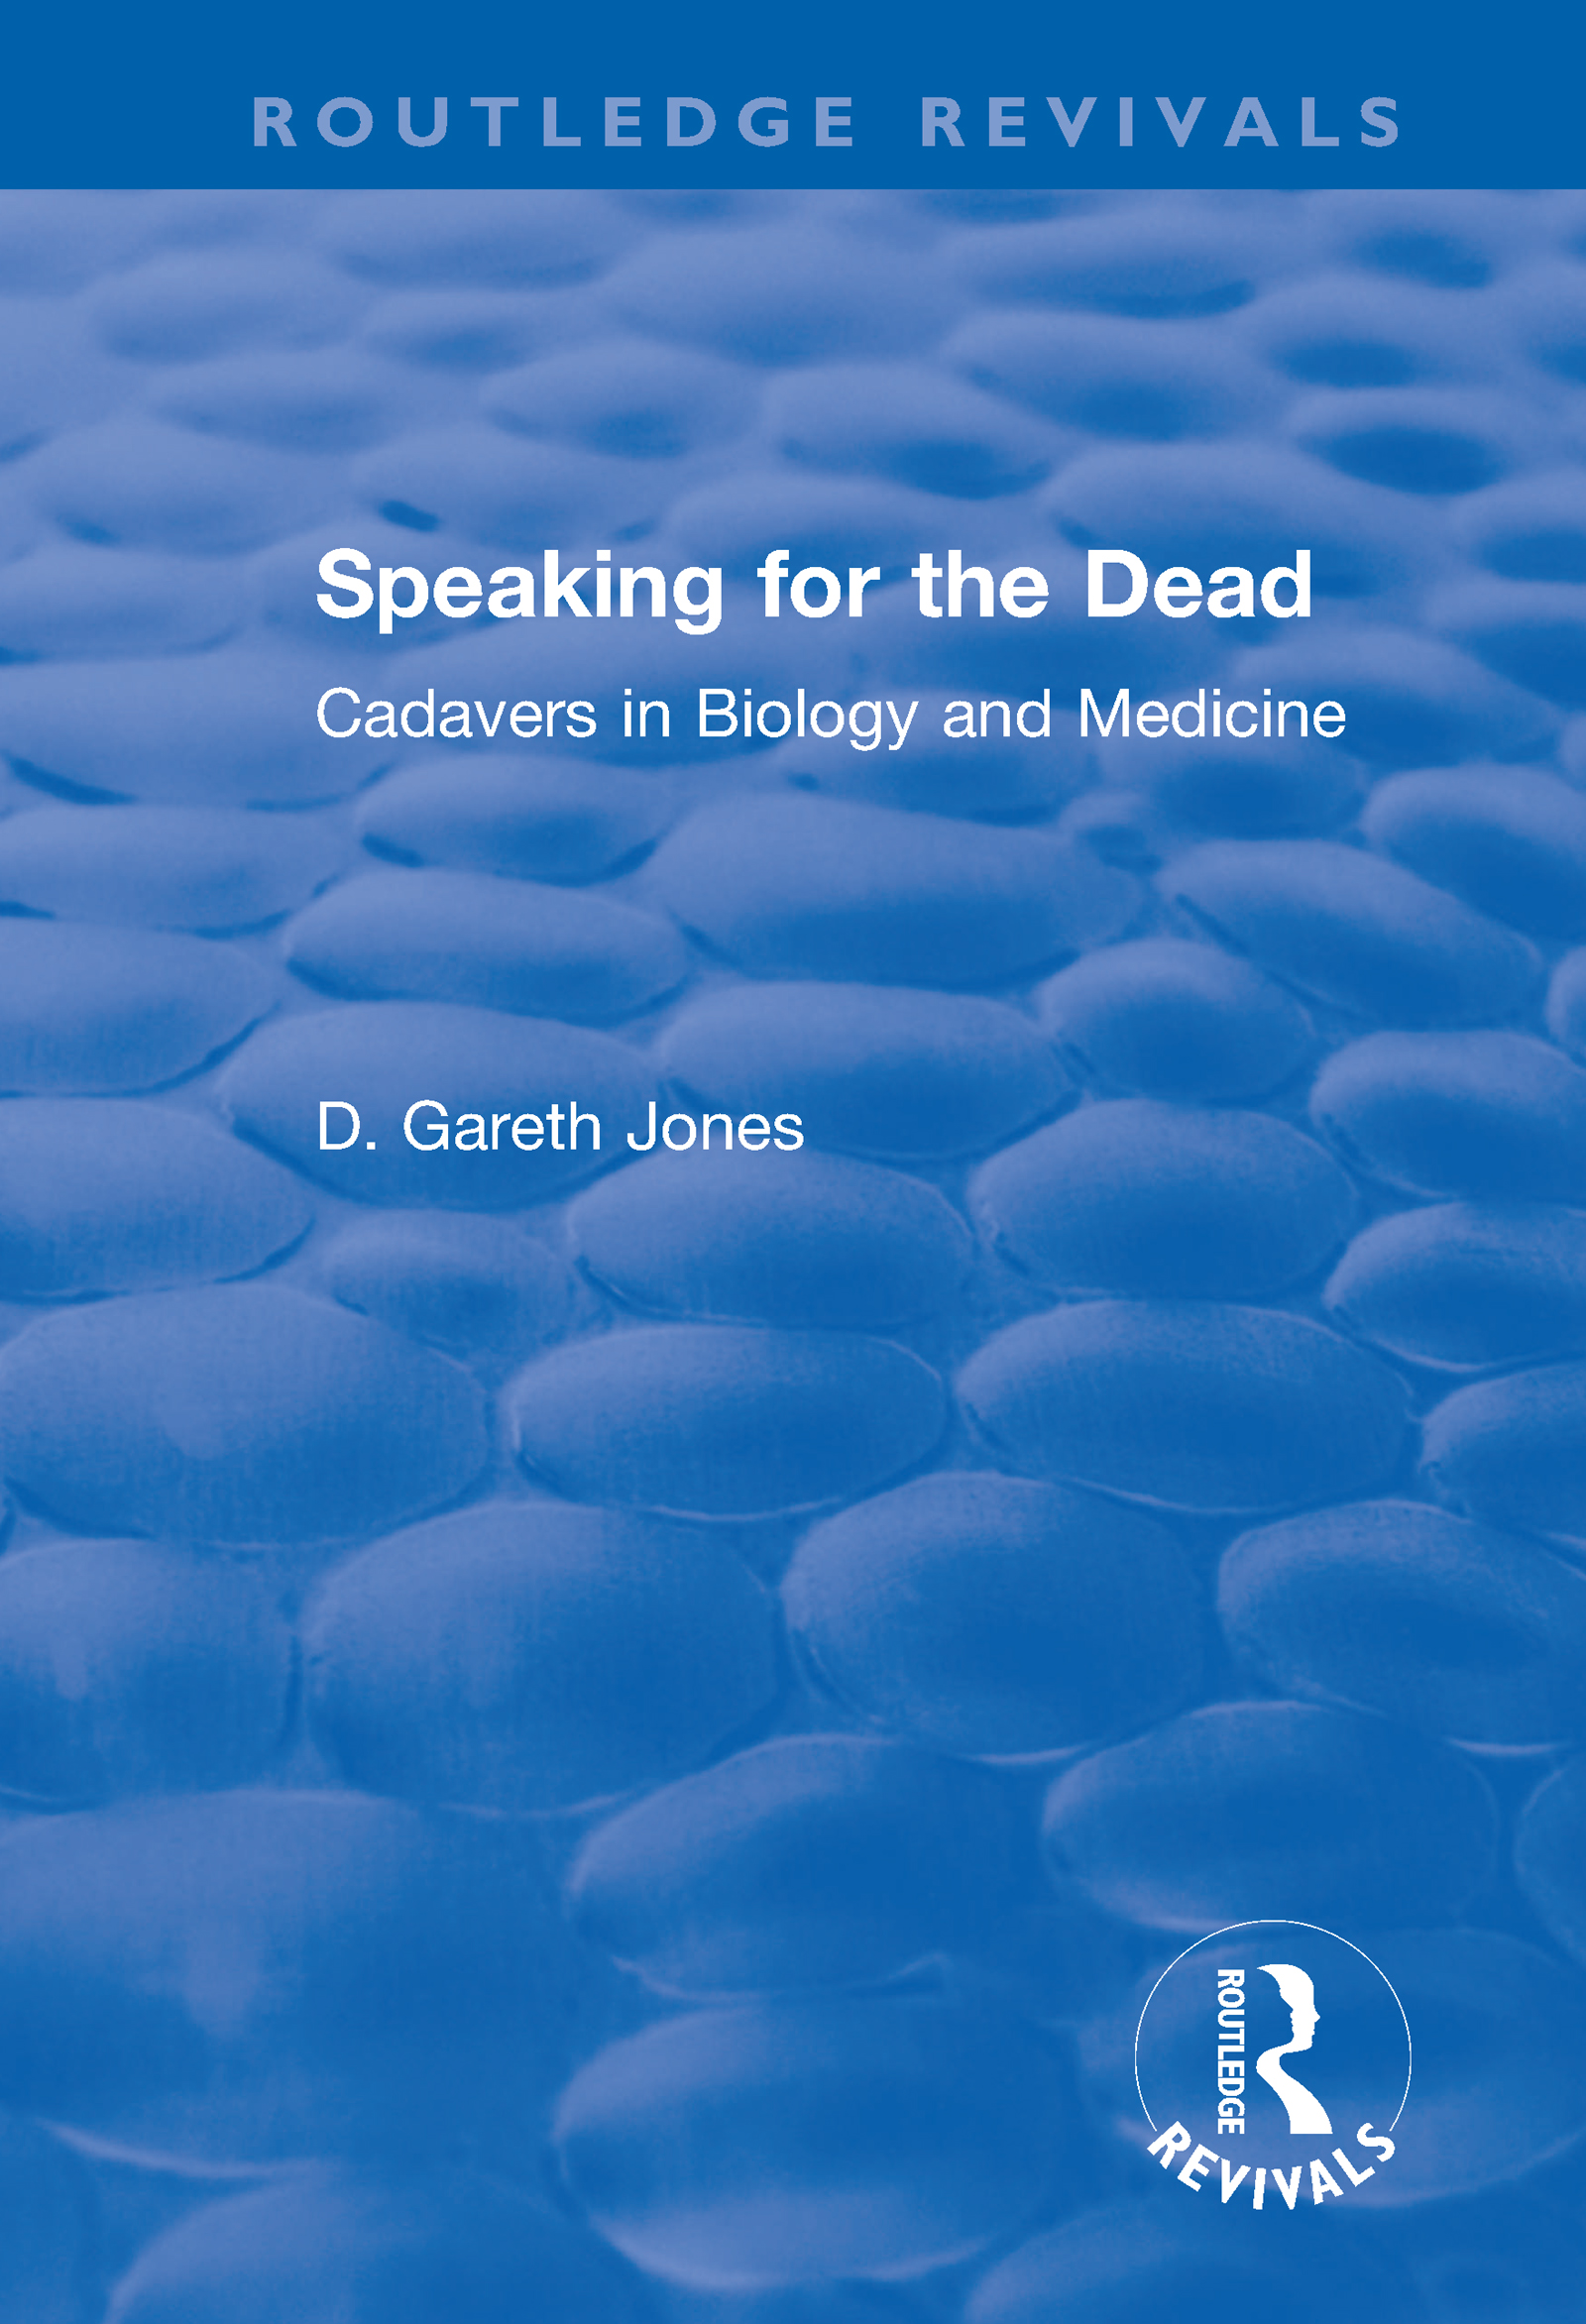 Speaking for the Dead: Cadavers in Biology and Medicine